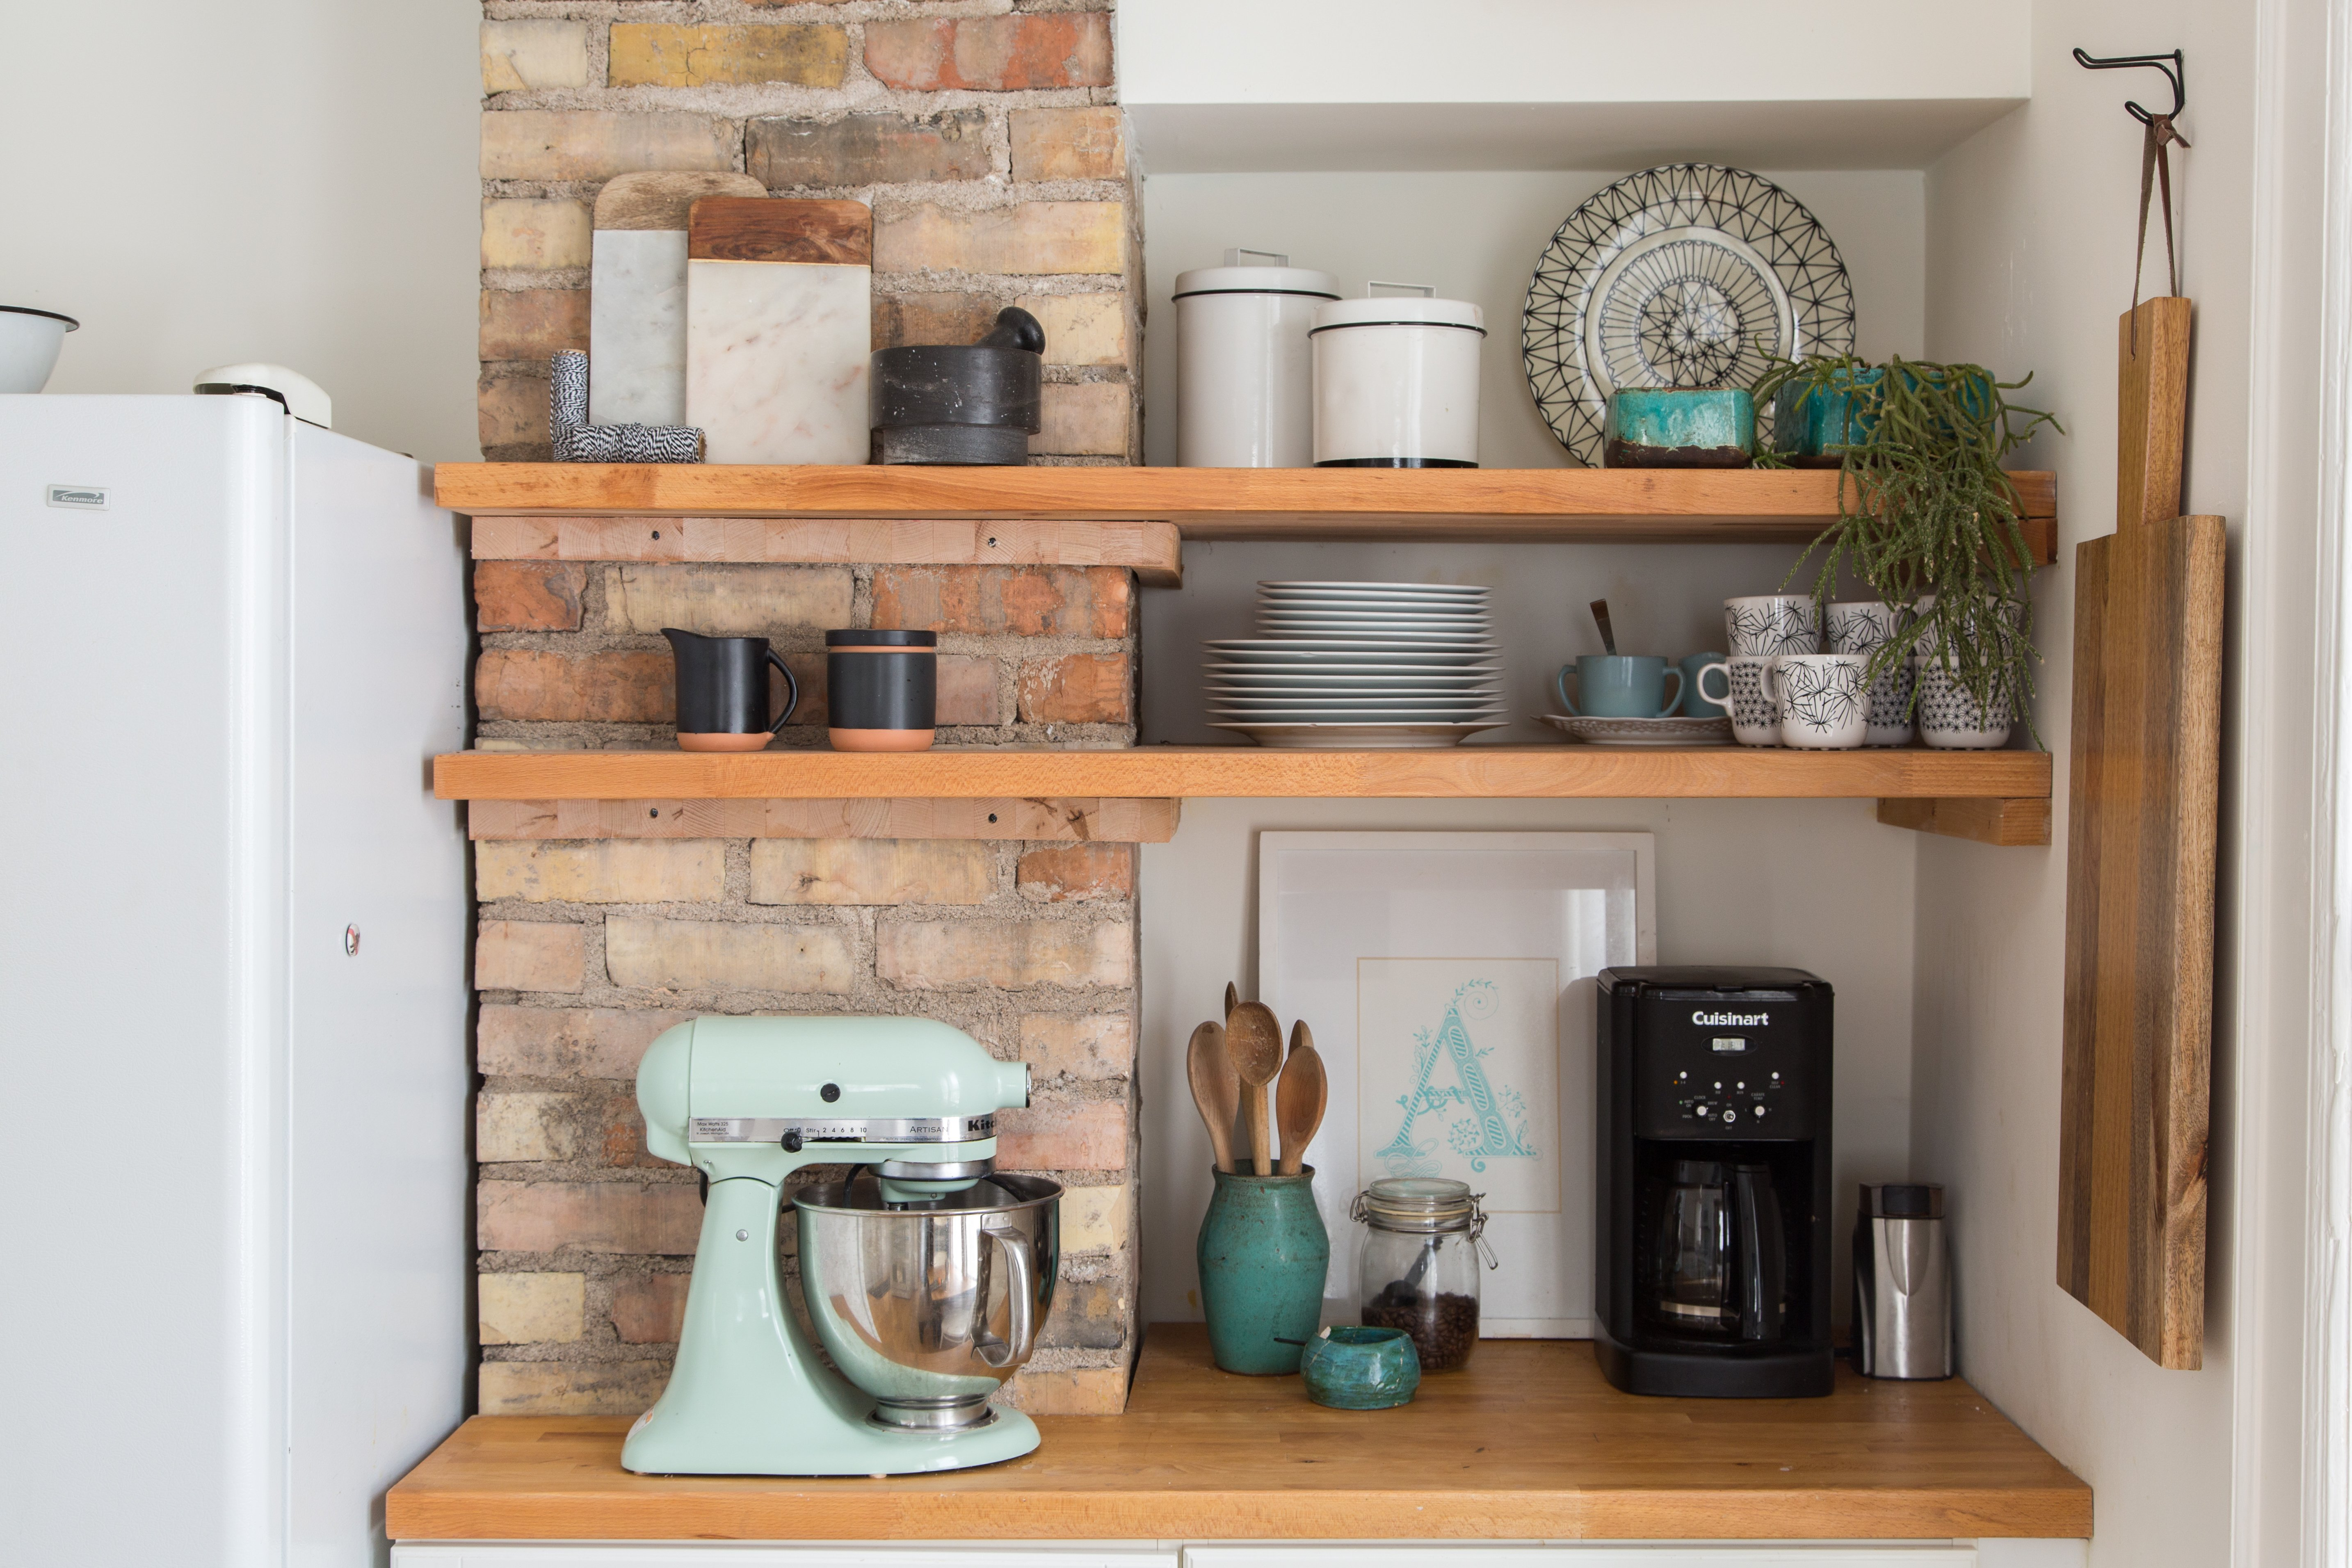 10 Snazzy Ways To Organize And Store Small Appliances Kitchn